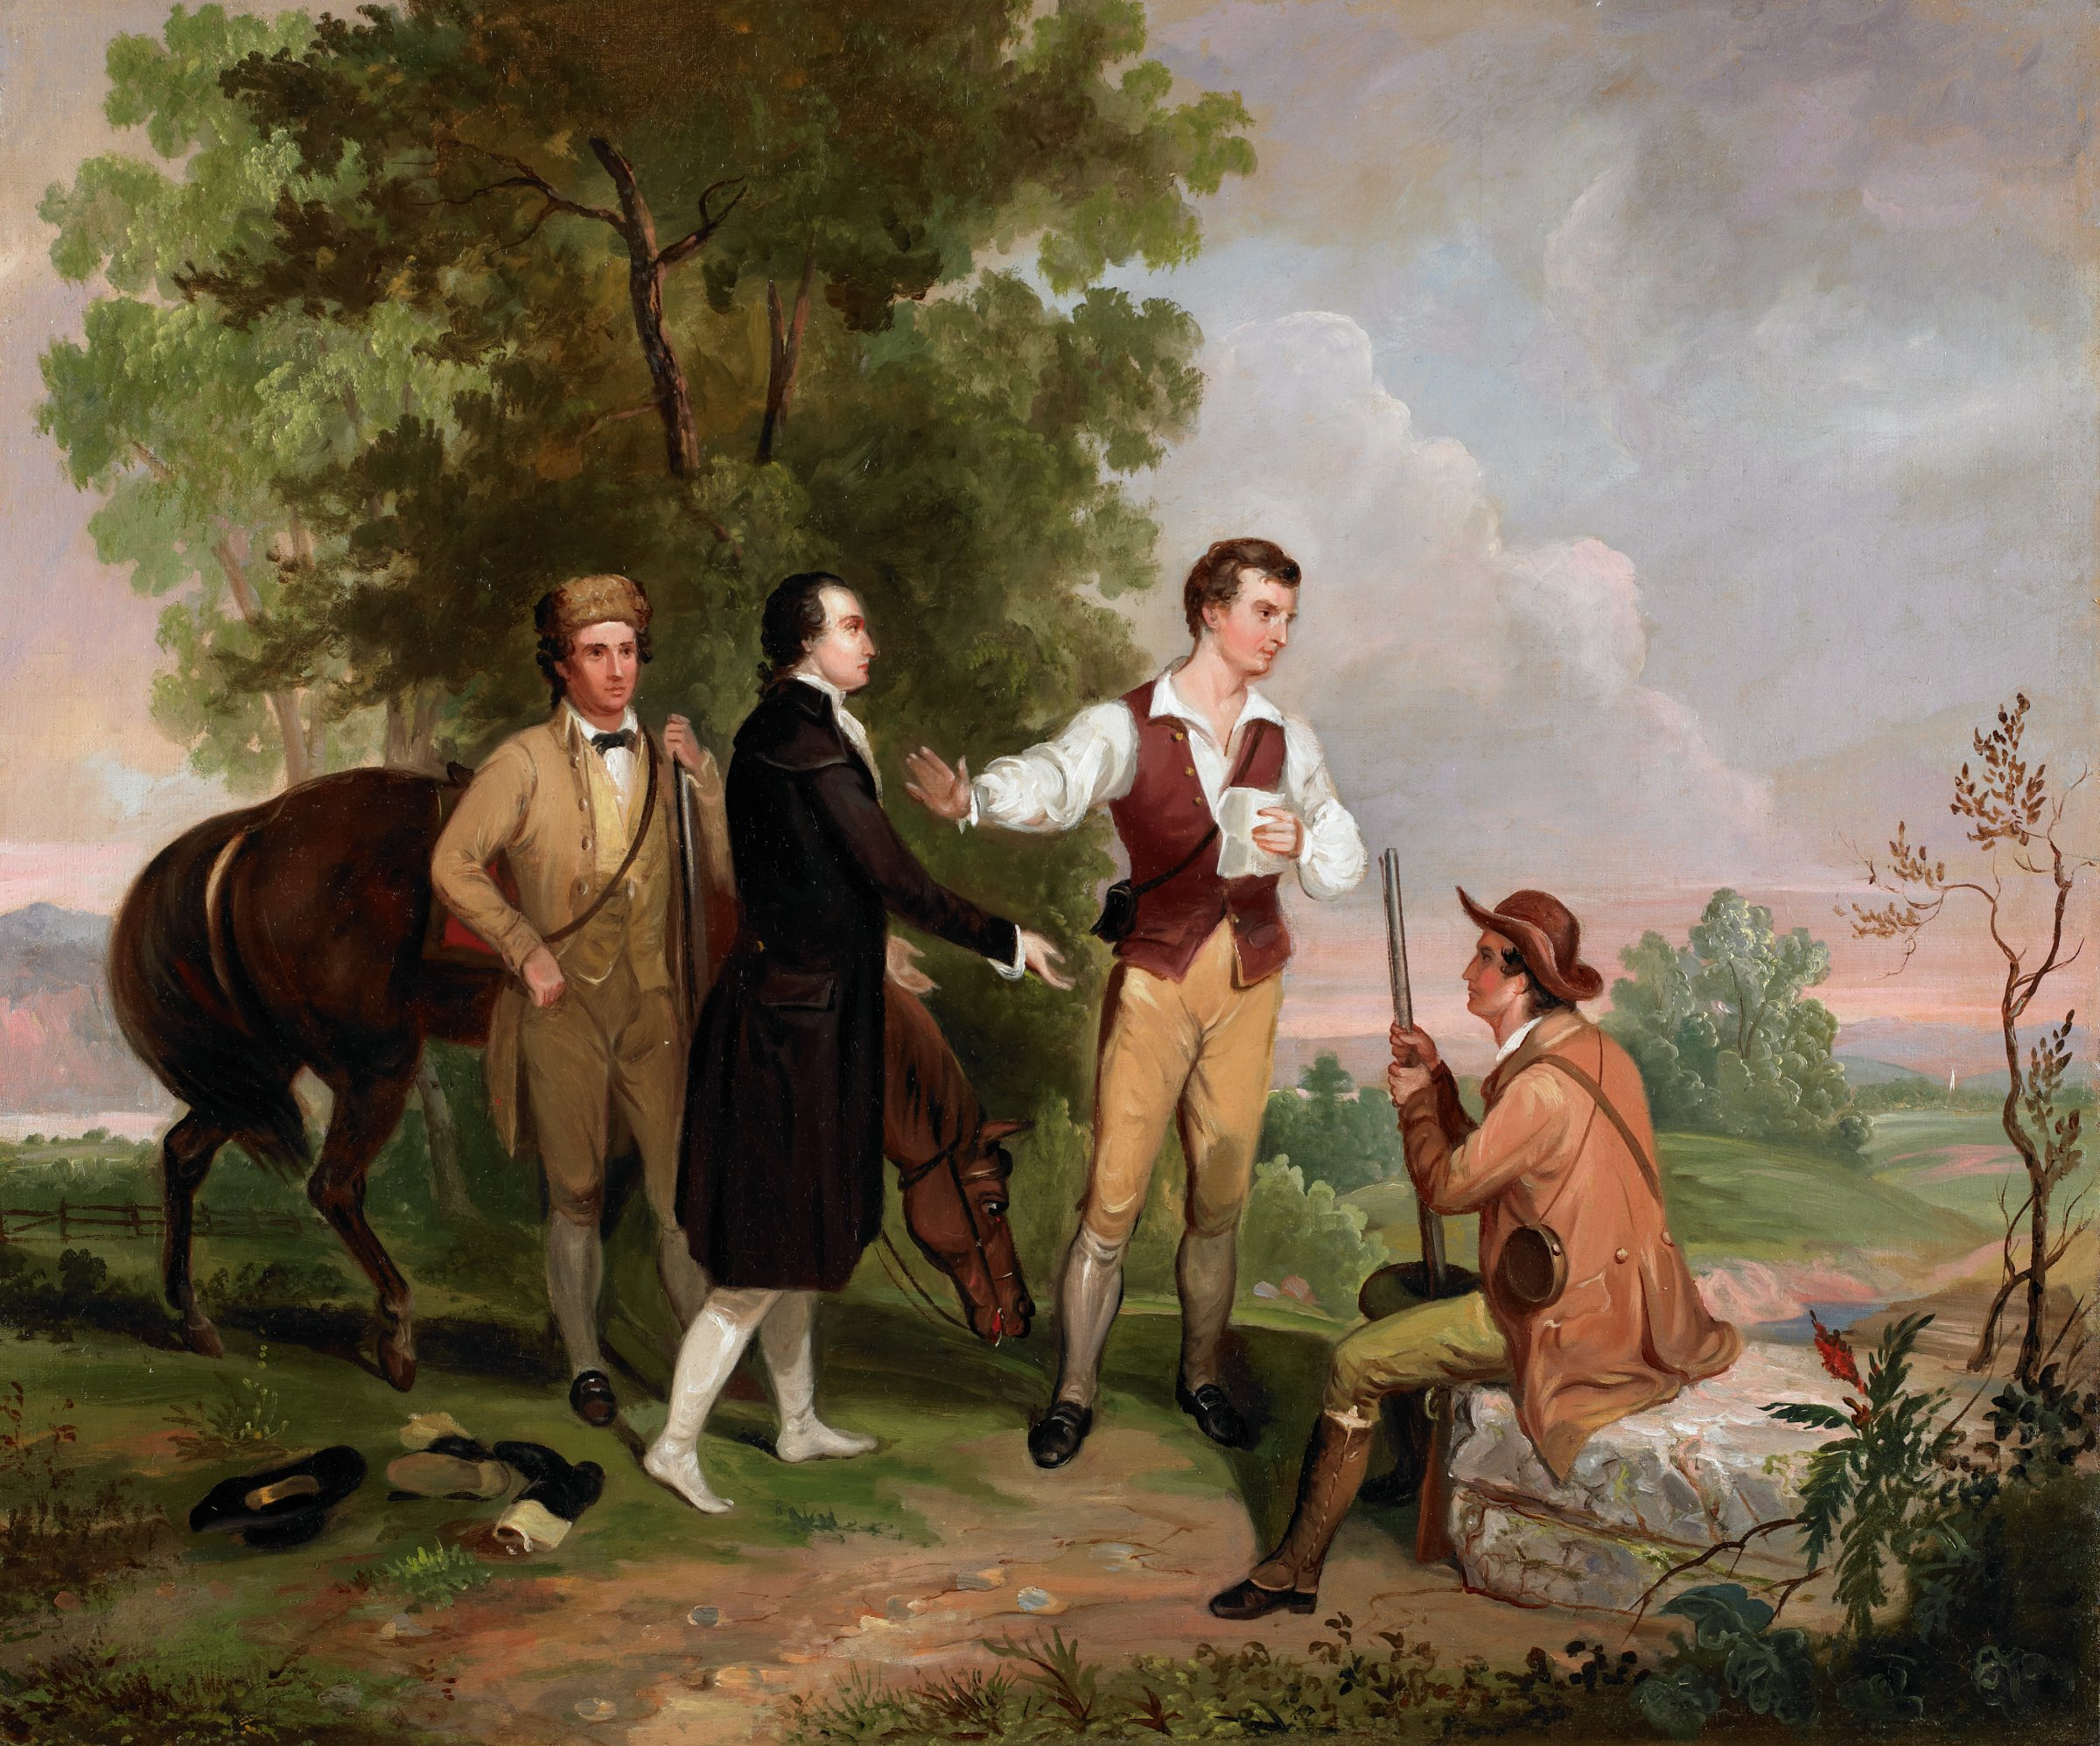 The Capture of Major André, Asher Brown Durand, oil on canvas